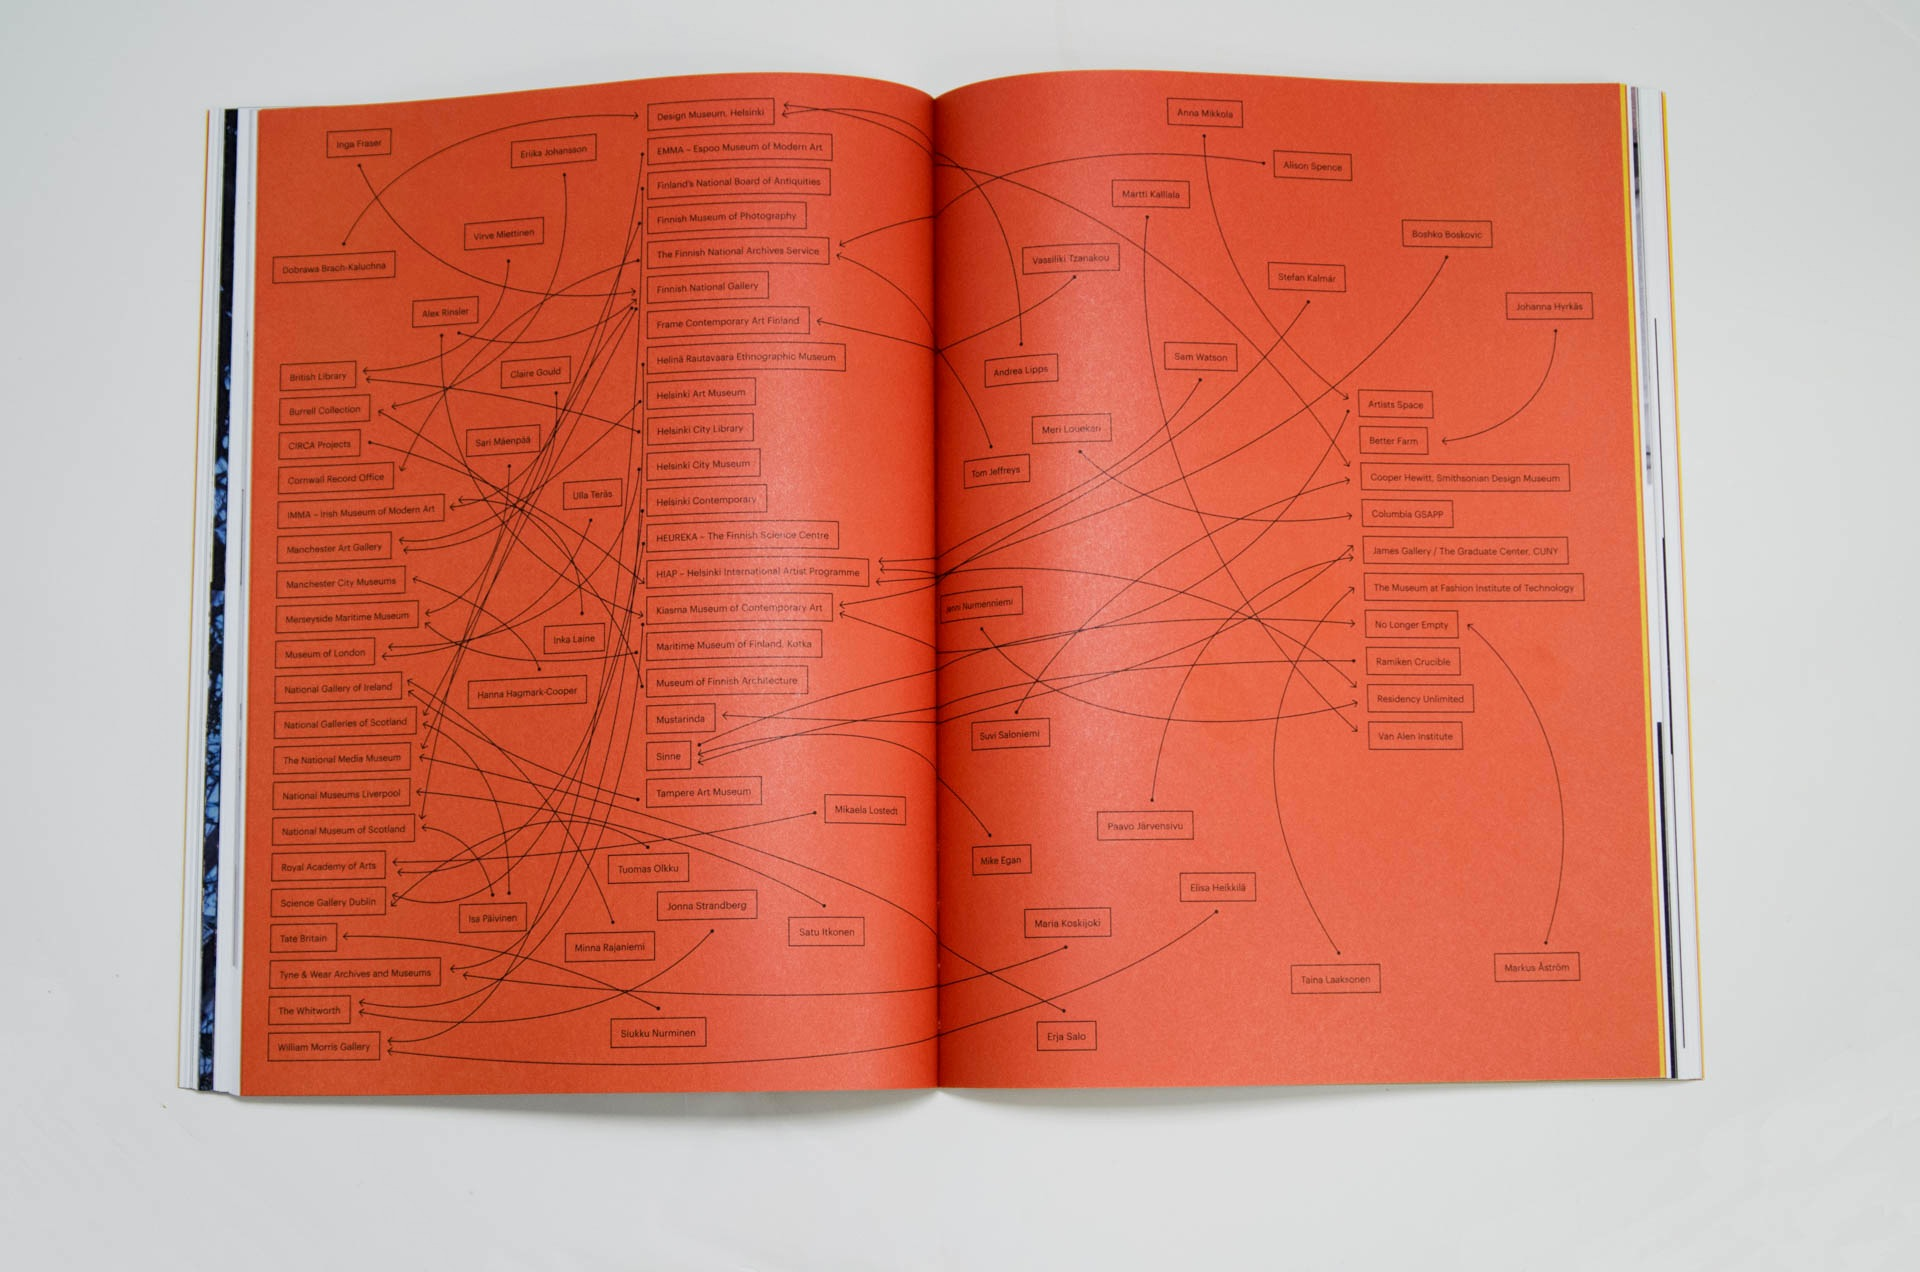 A spread from the MOBIUS Manual depicting the multifaceted connections the Fellowship Program has created.